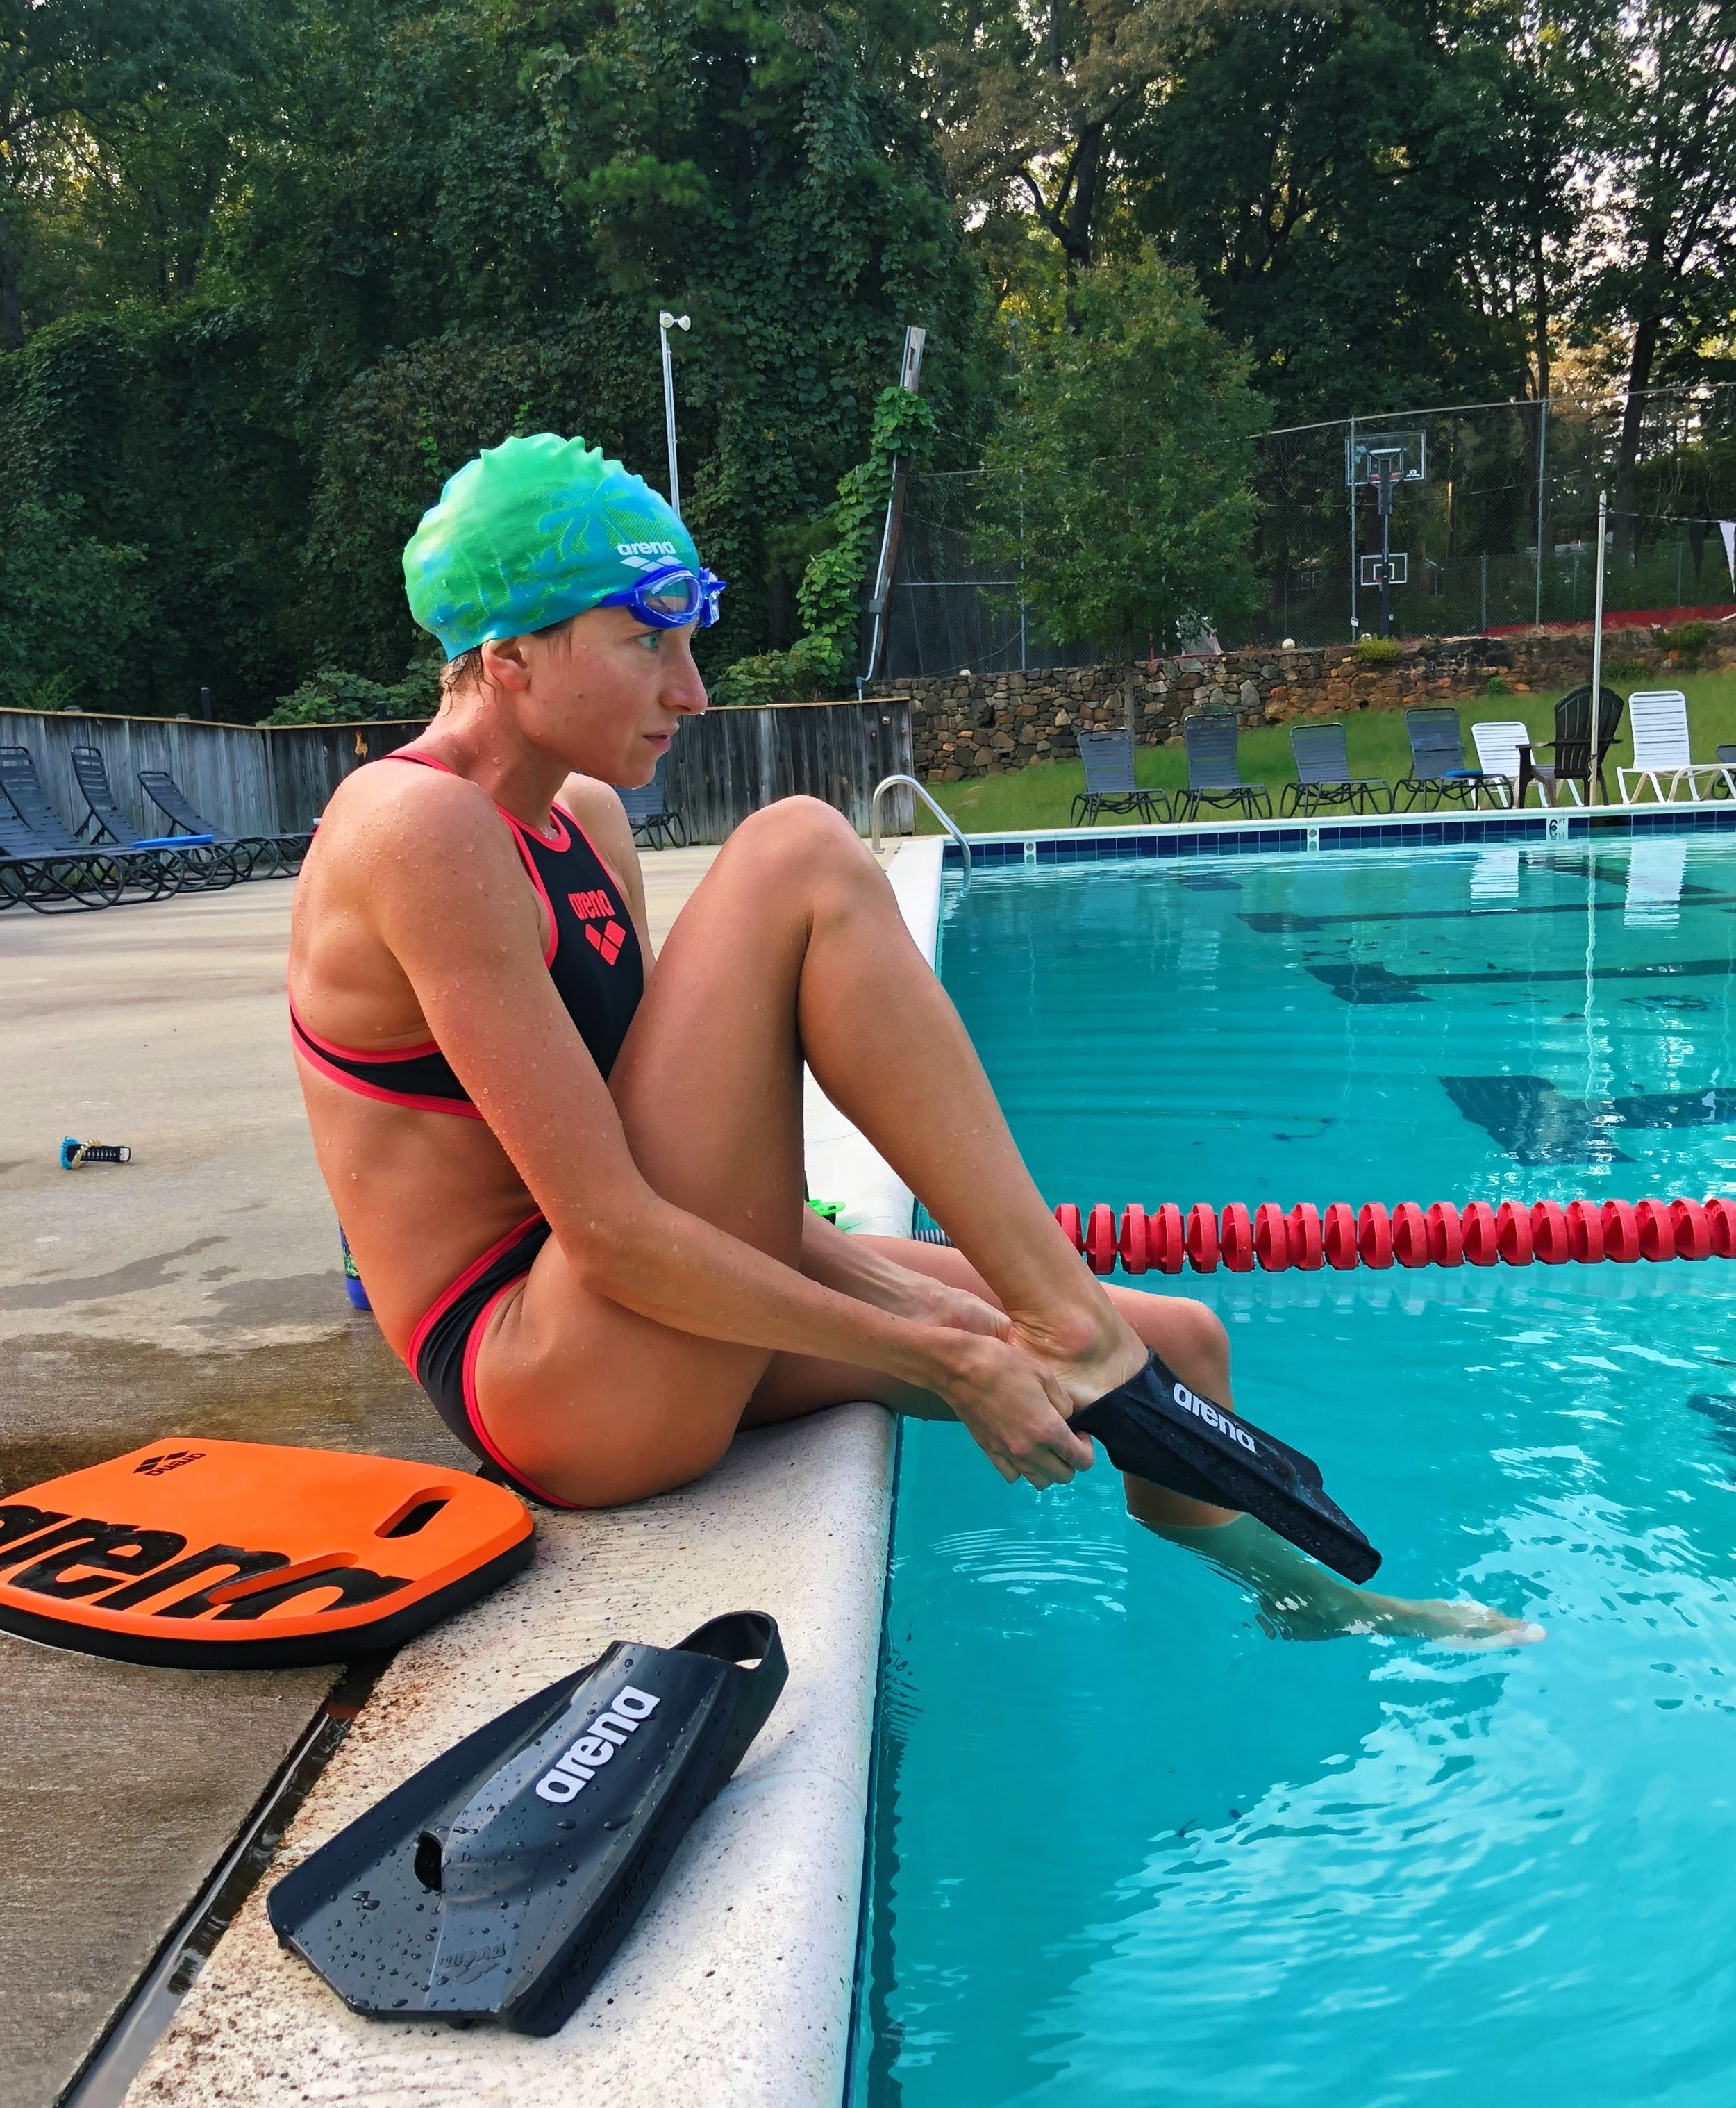 Fins are a great way to use your legs a little more in the pool or to keep going for a little longer.